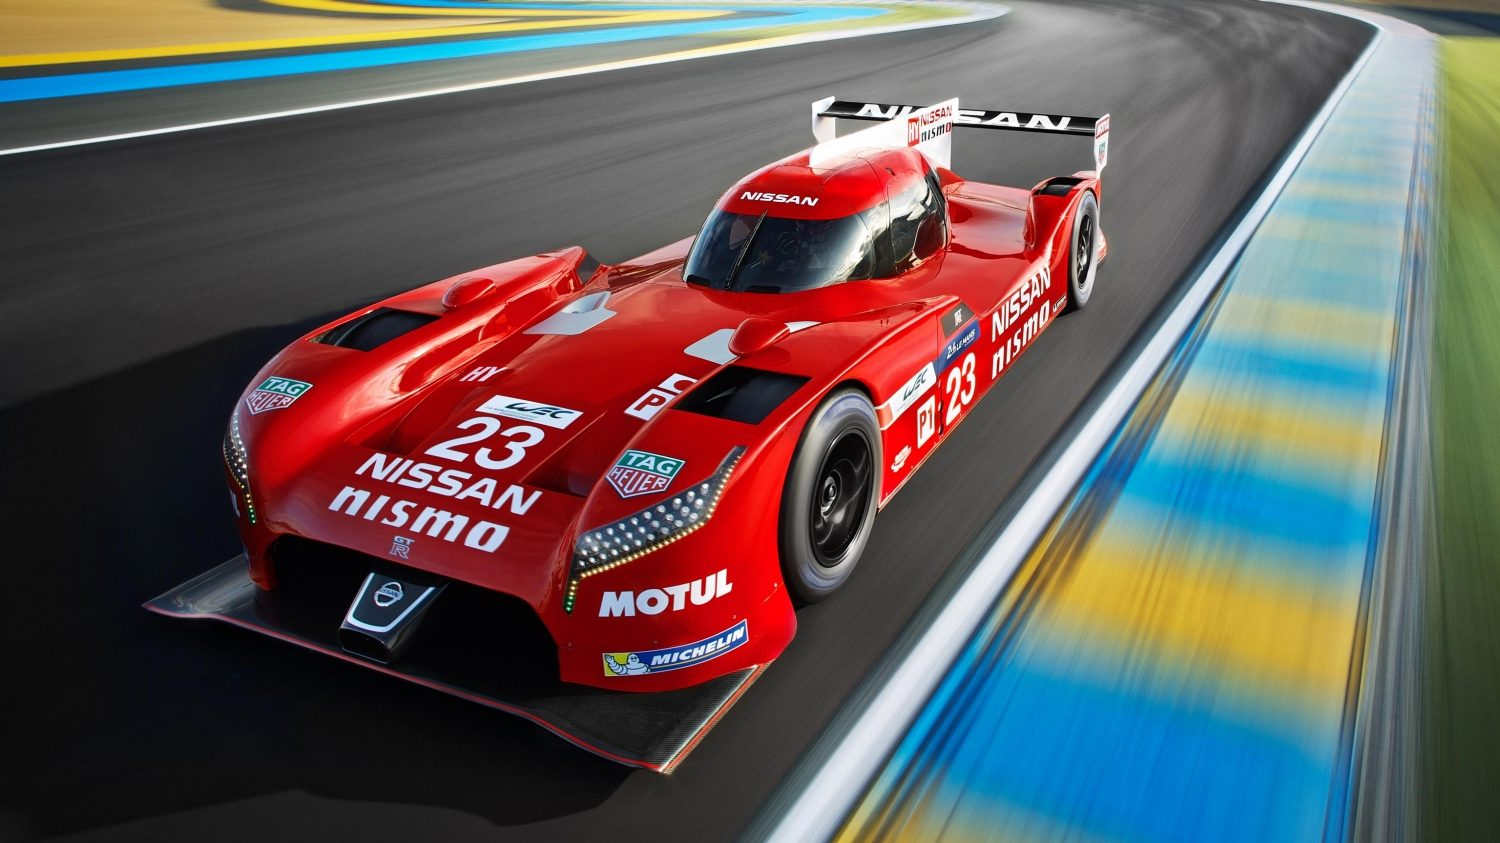 GT-R LM NISMO. Gallery front on the track.